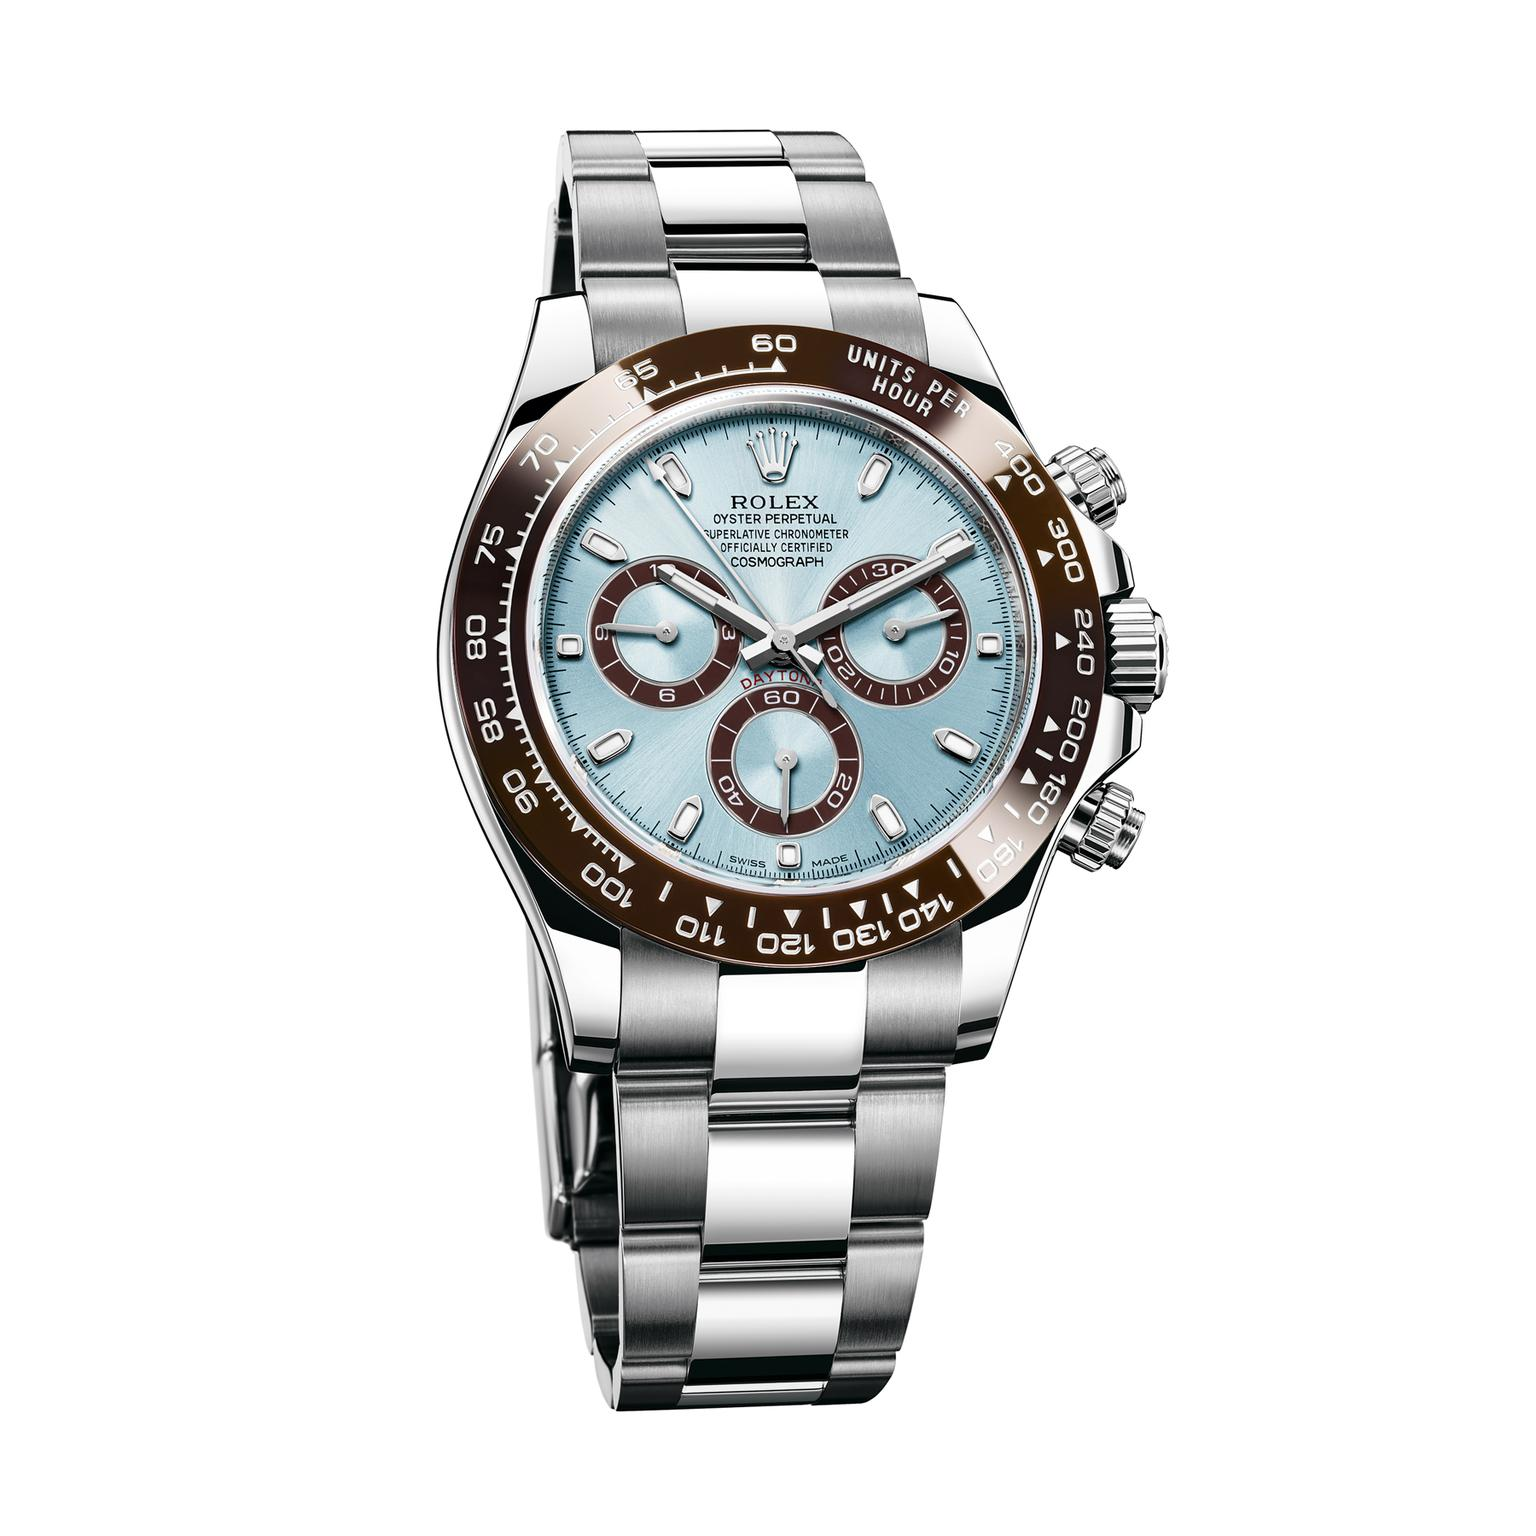 18dd4f6ad64 Oyster Perpetual Cosmograph Daytona 40mm platinum watch